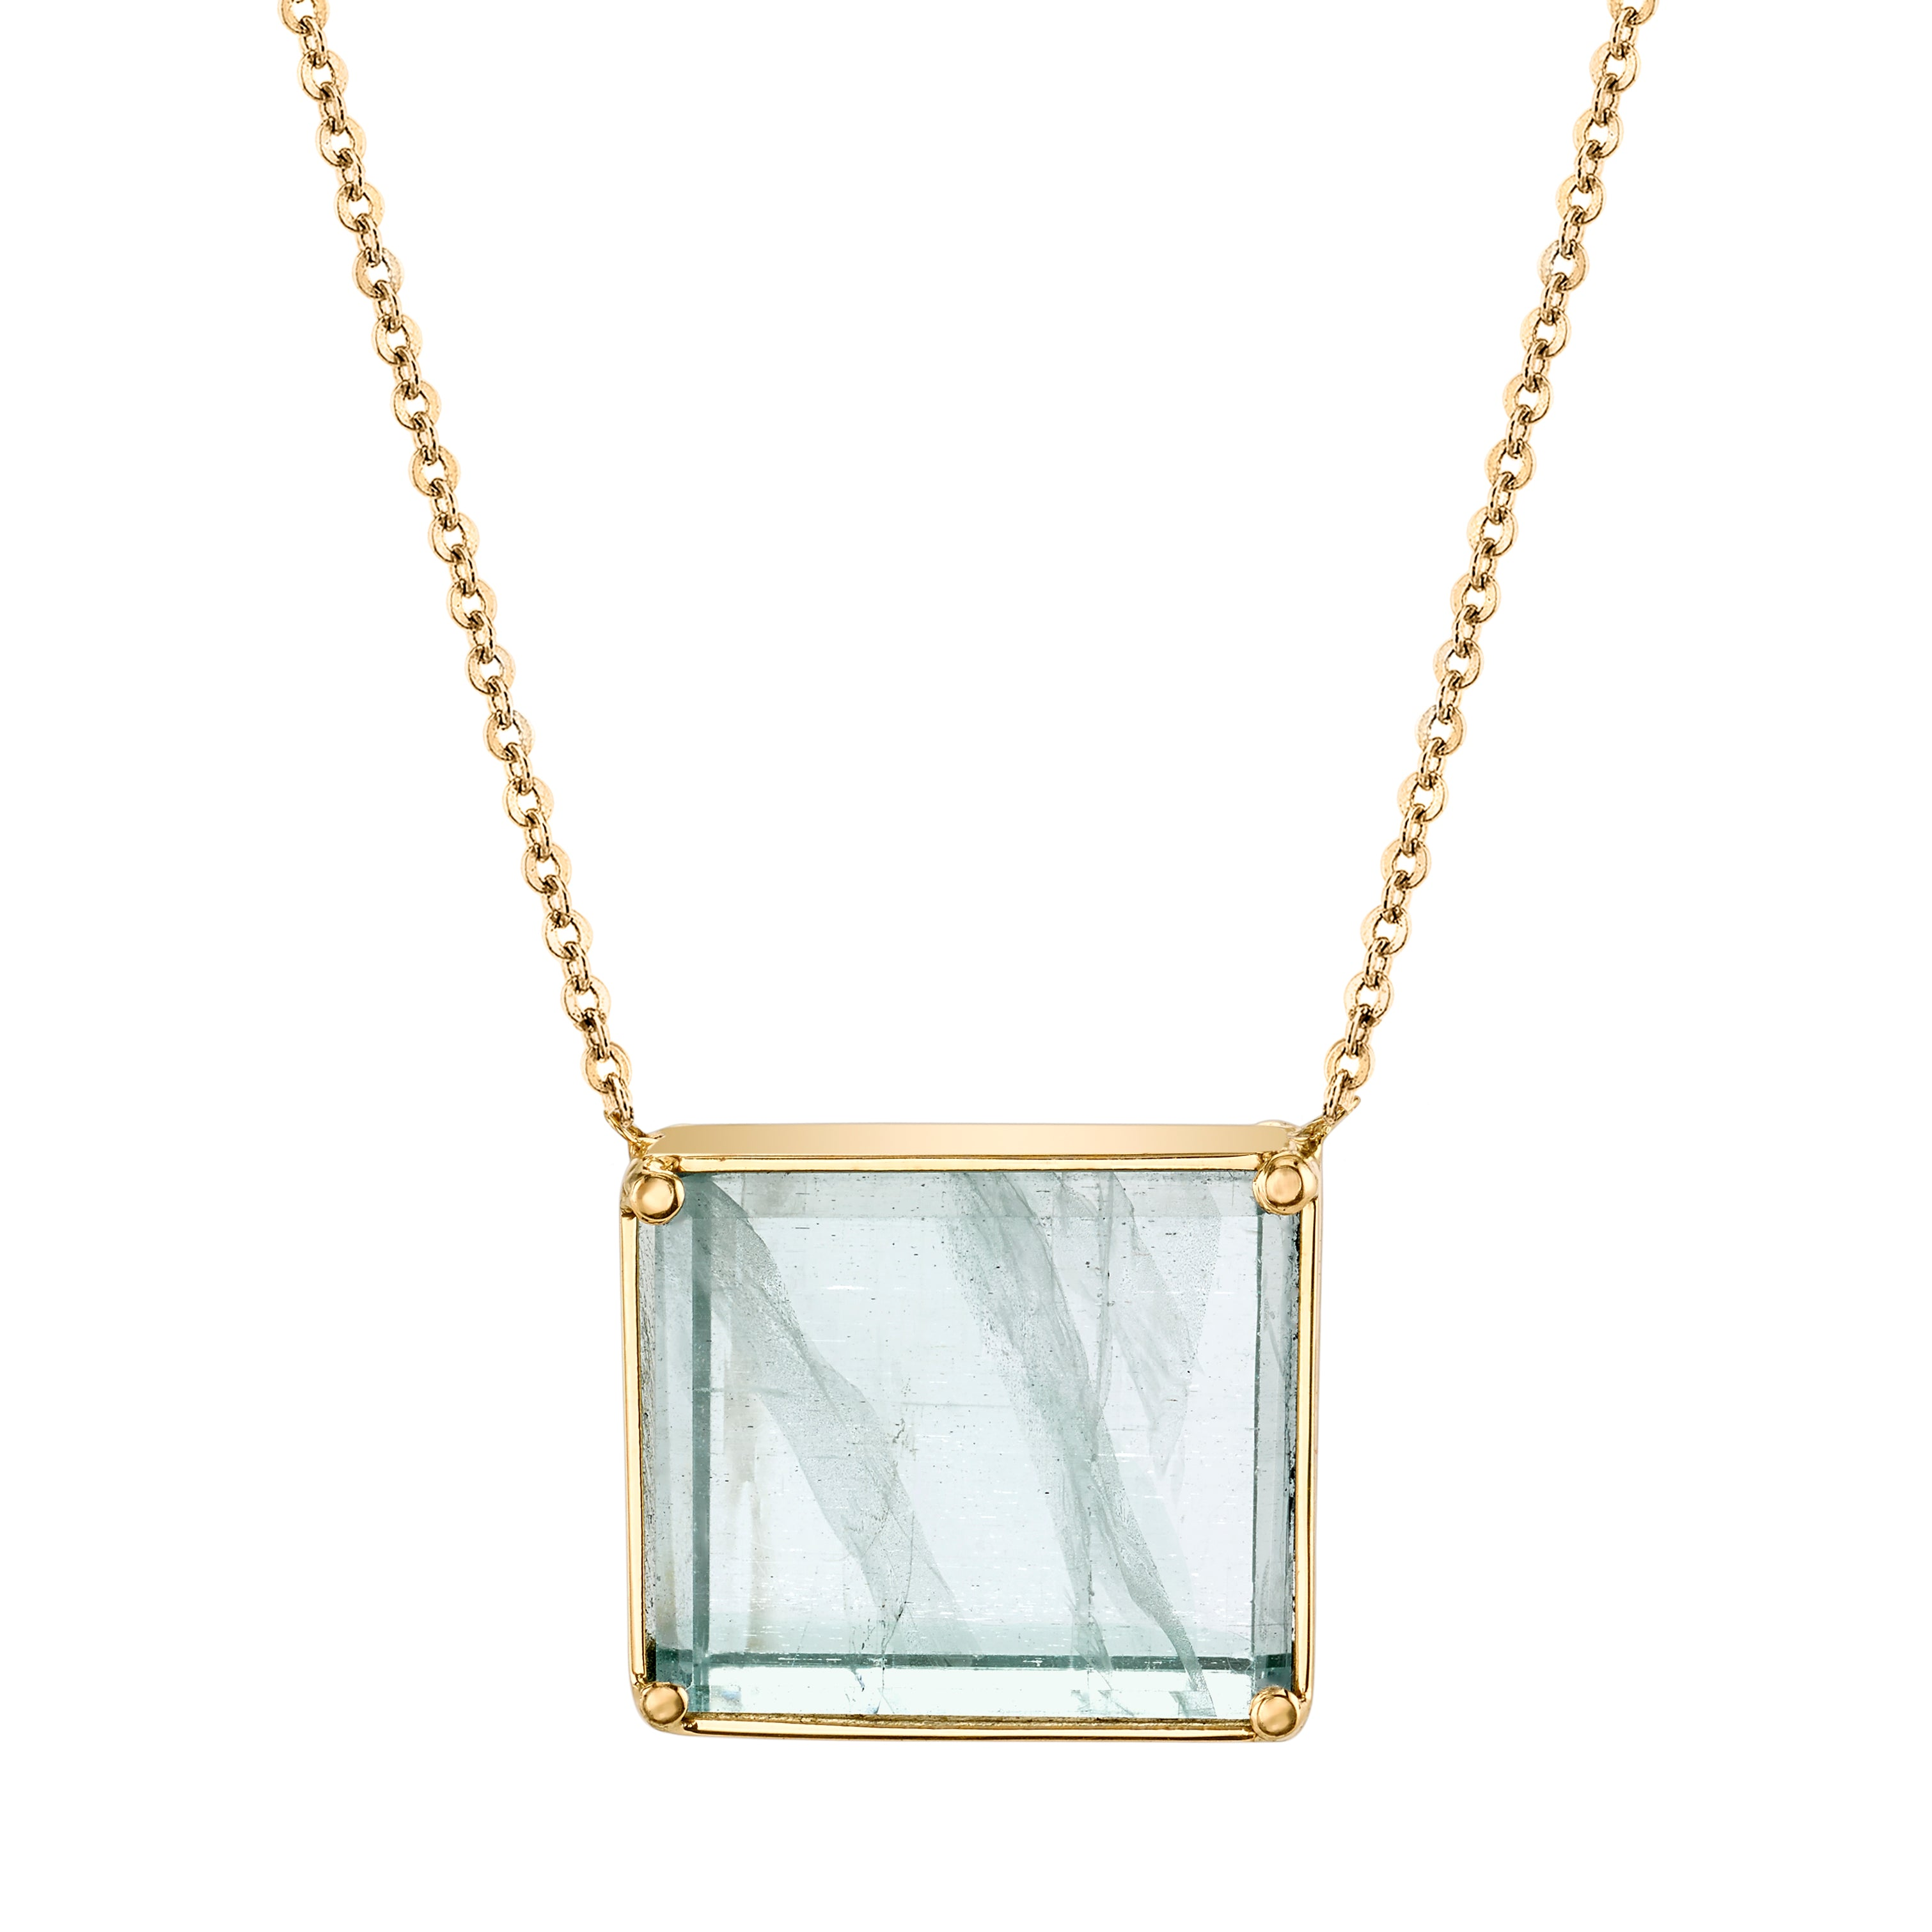 Glass Cut Aquamarine Necklace